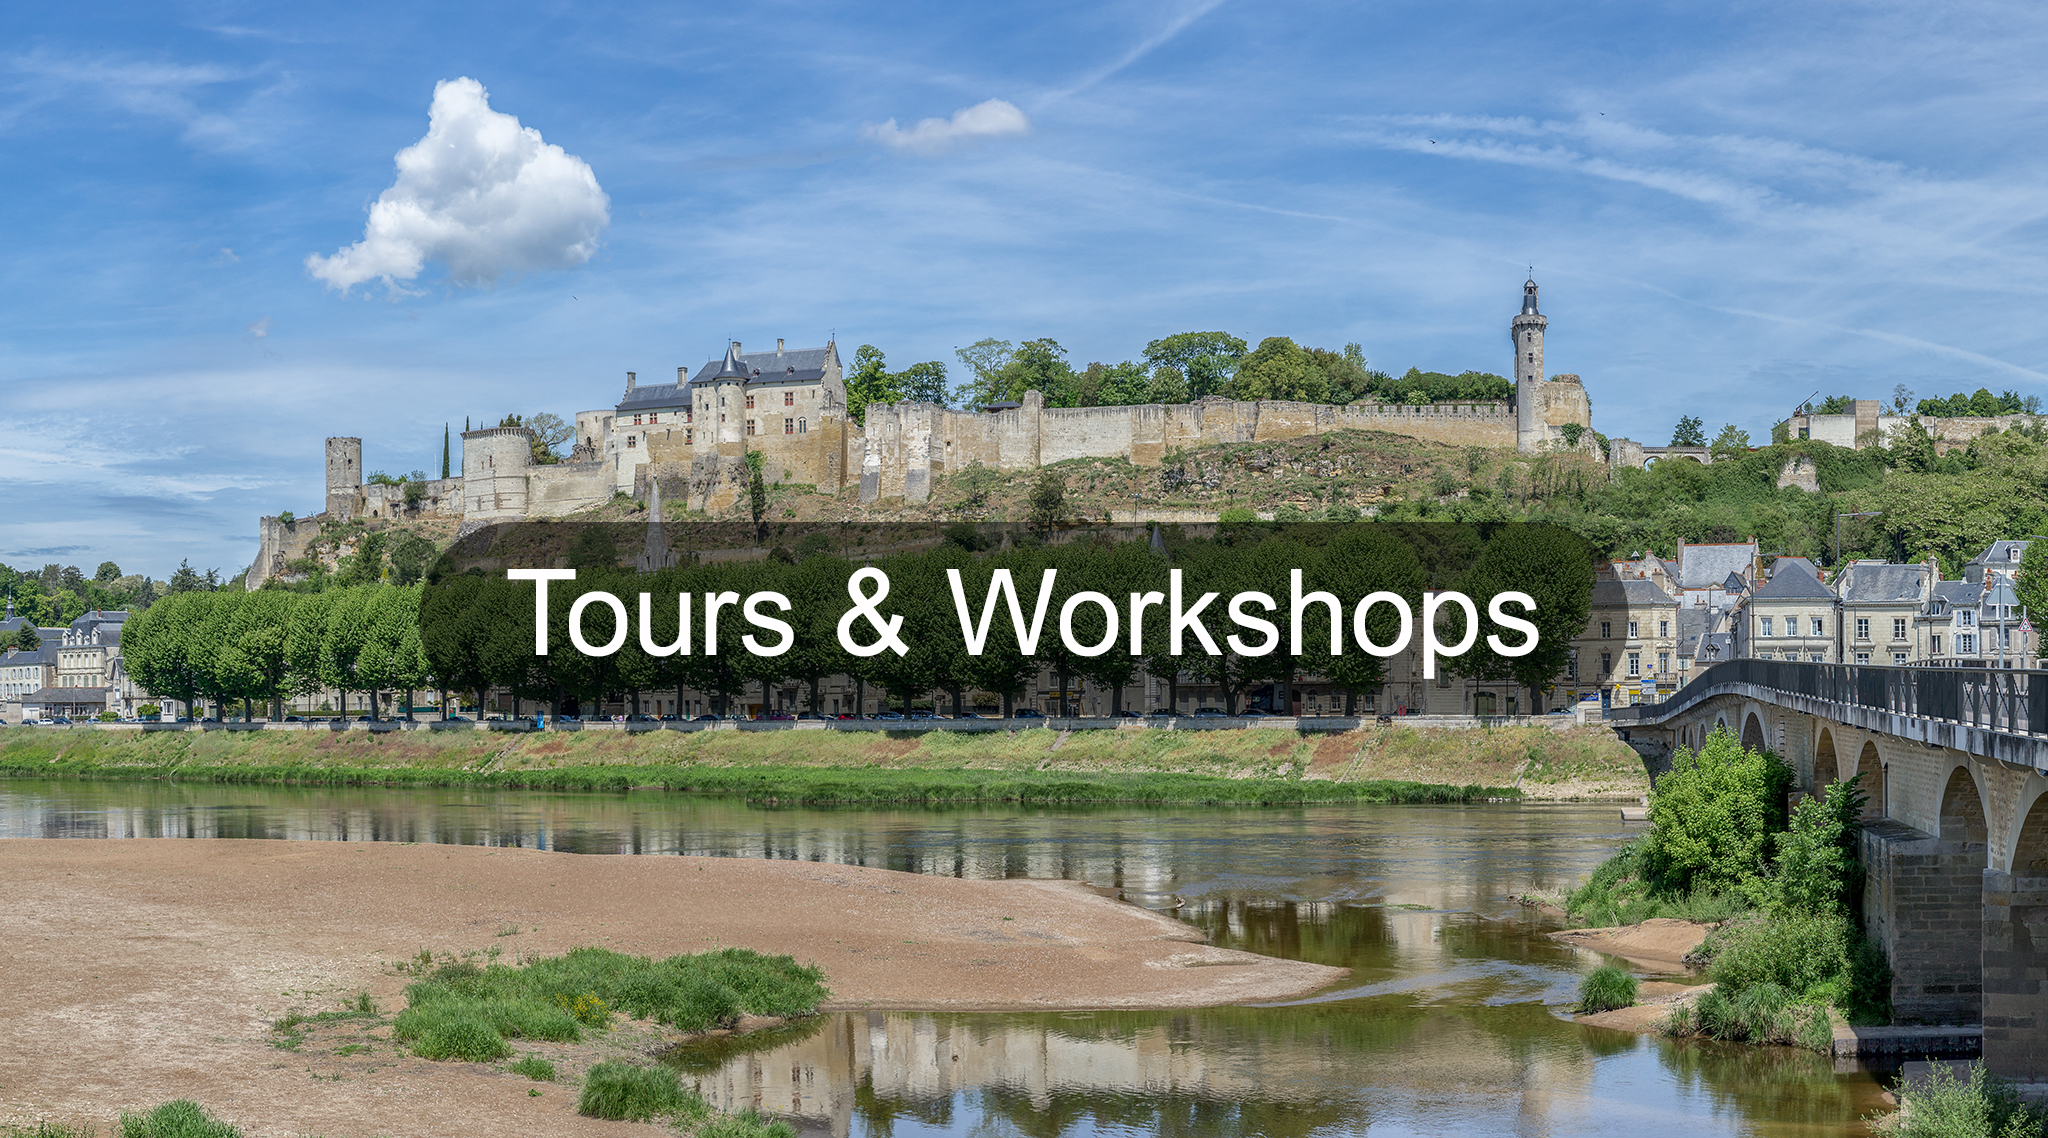 Tours & Workshops.jpg